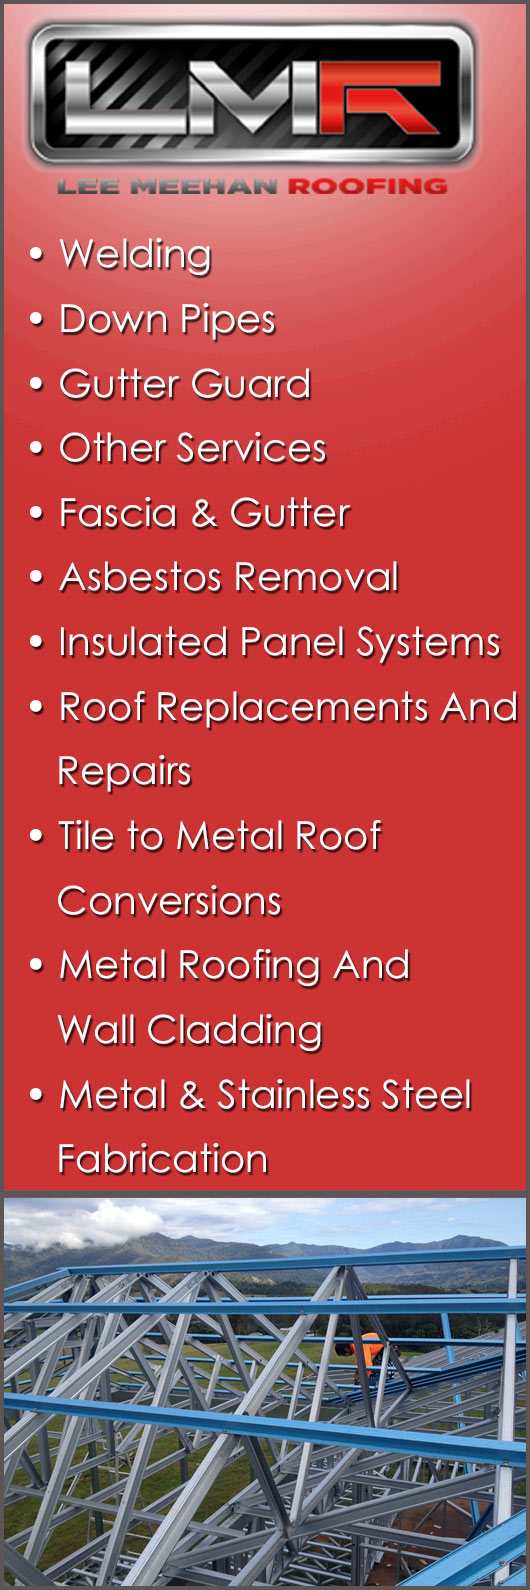 Lee Meehan Roofing Roofing Construction Amp Services 37